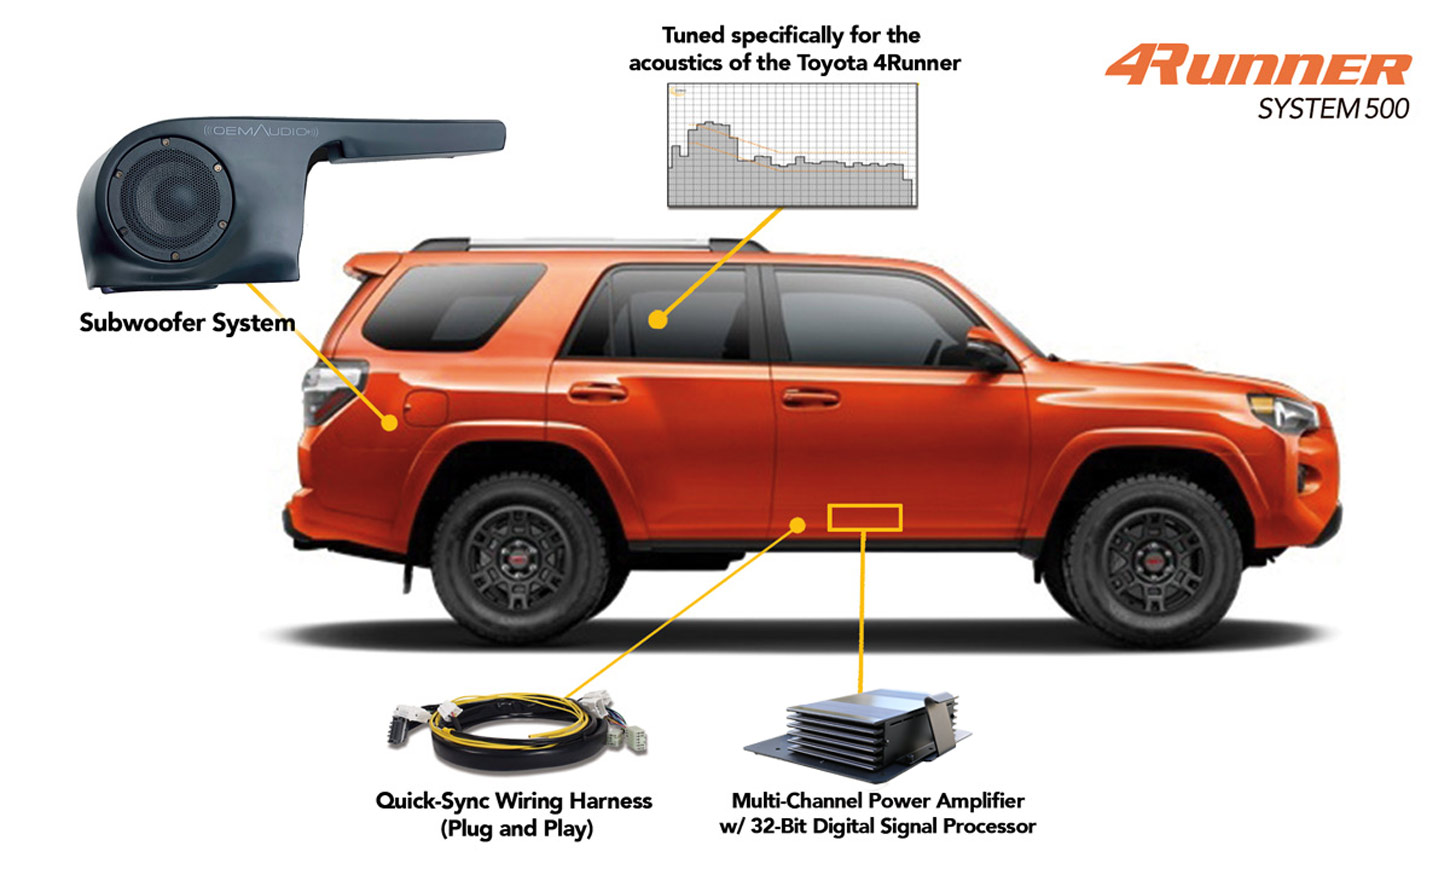 OEM Audio Plus 4Runner System 500